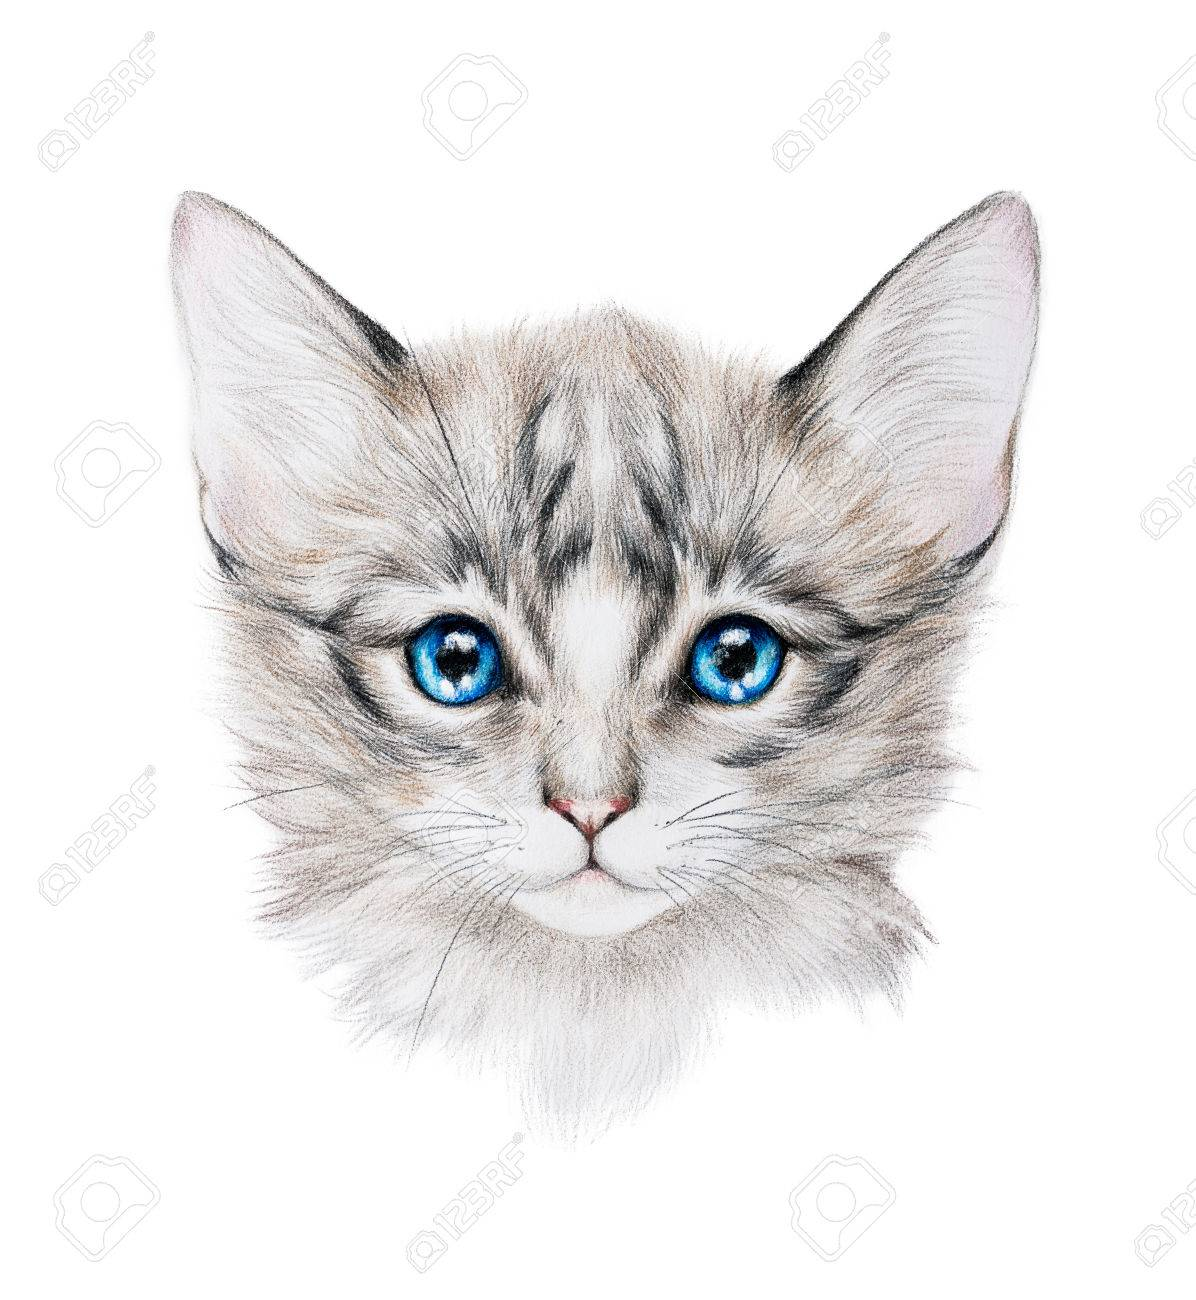 Pencil portrait of a small grey kitten with bright blue eyes